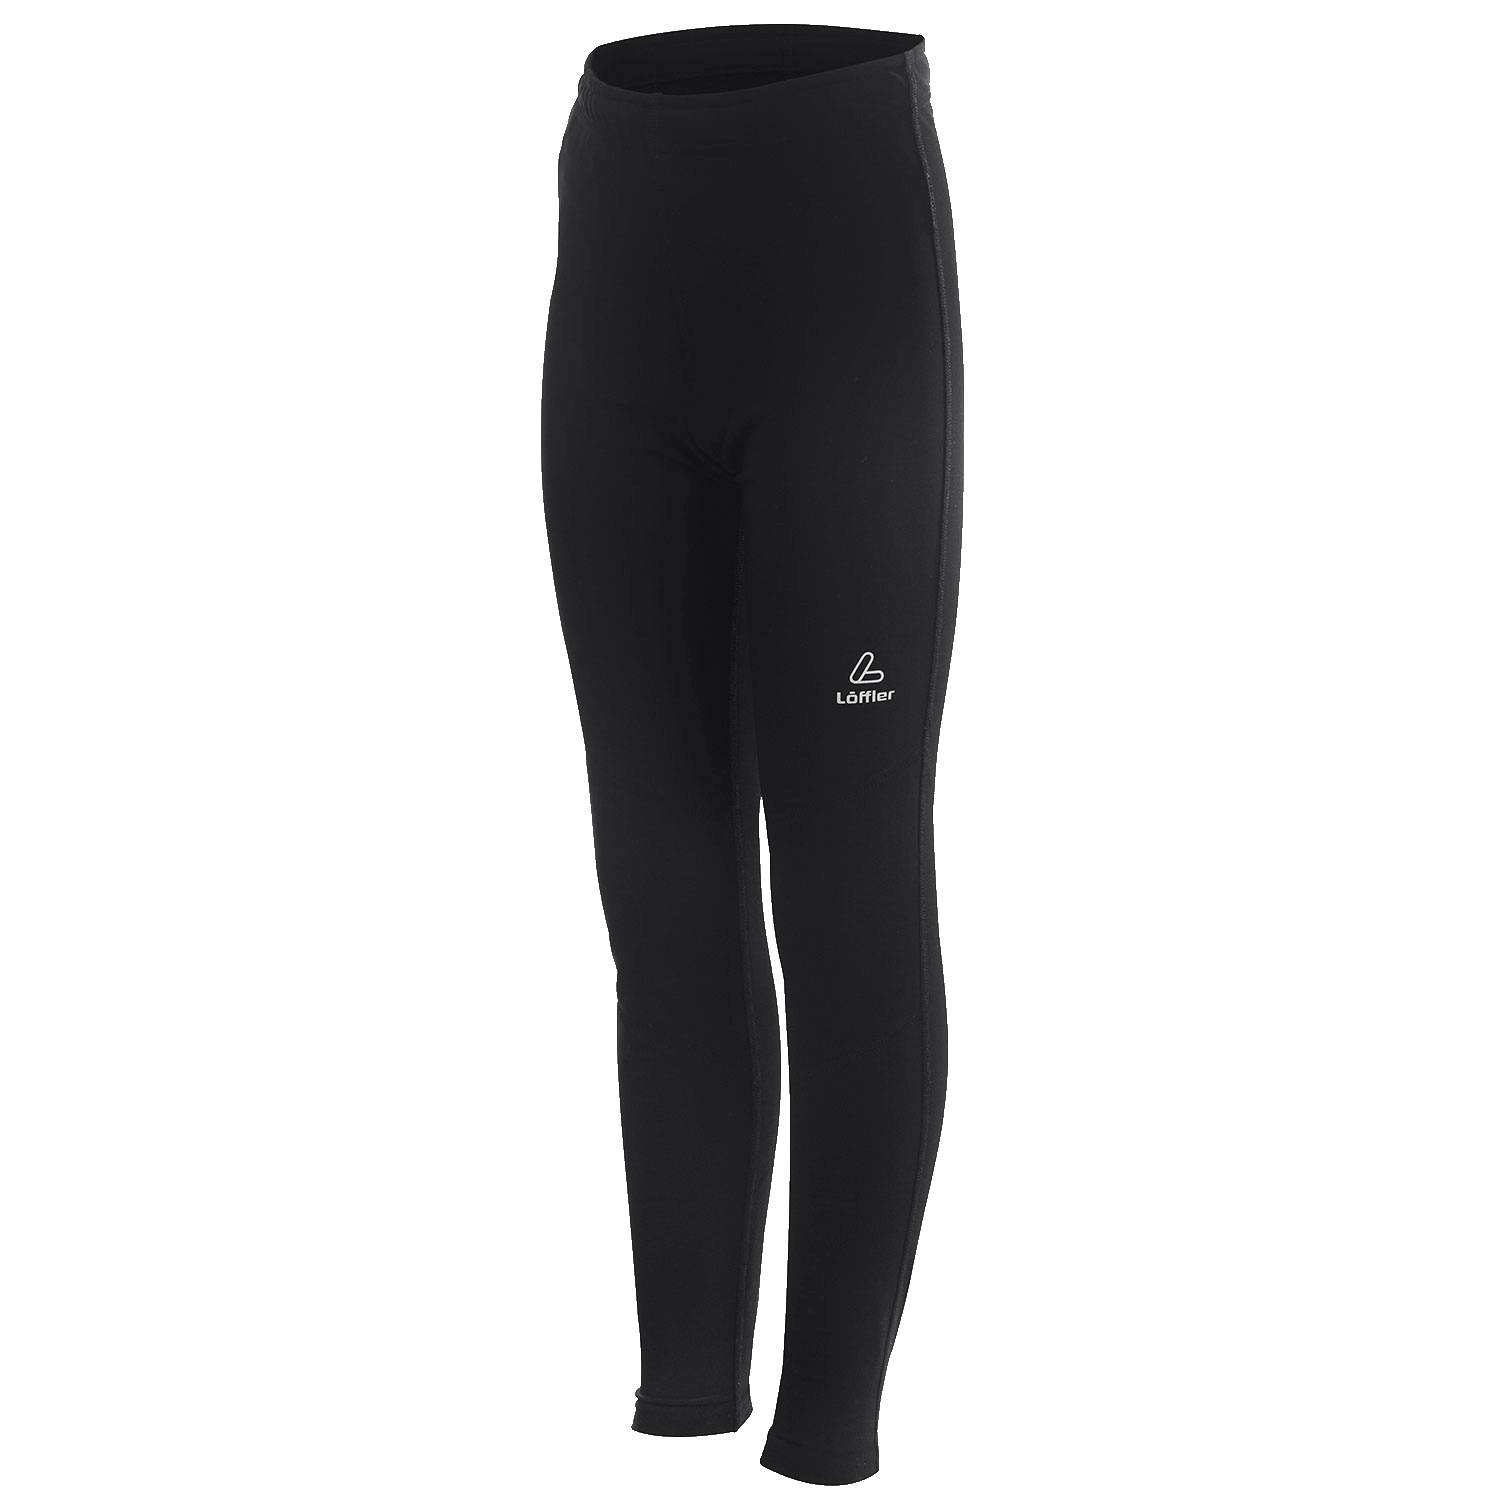 Kinder Funktionshose Thermo Tights